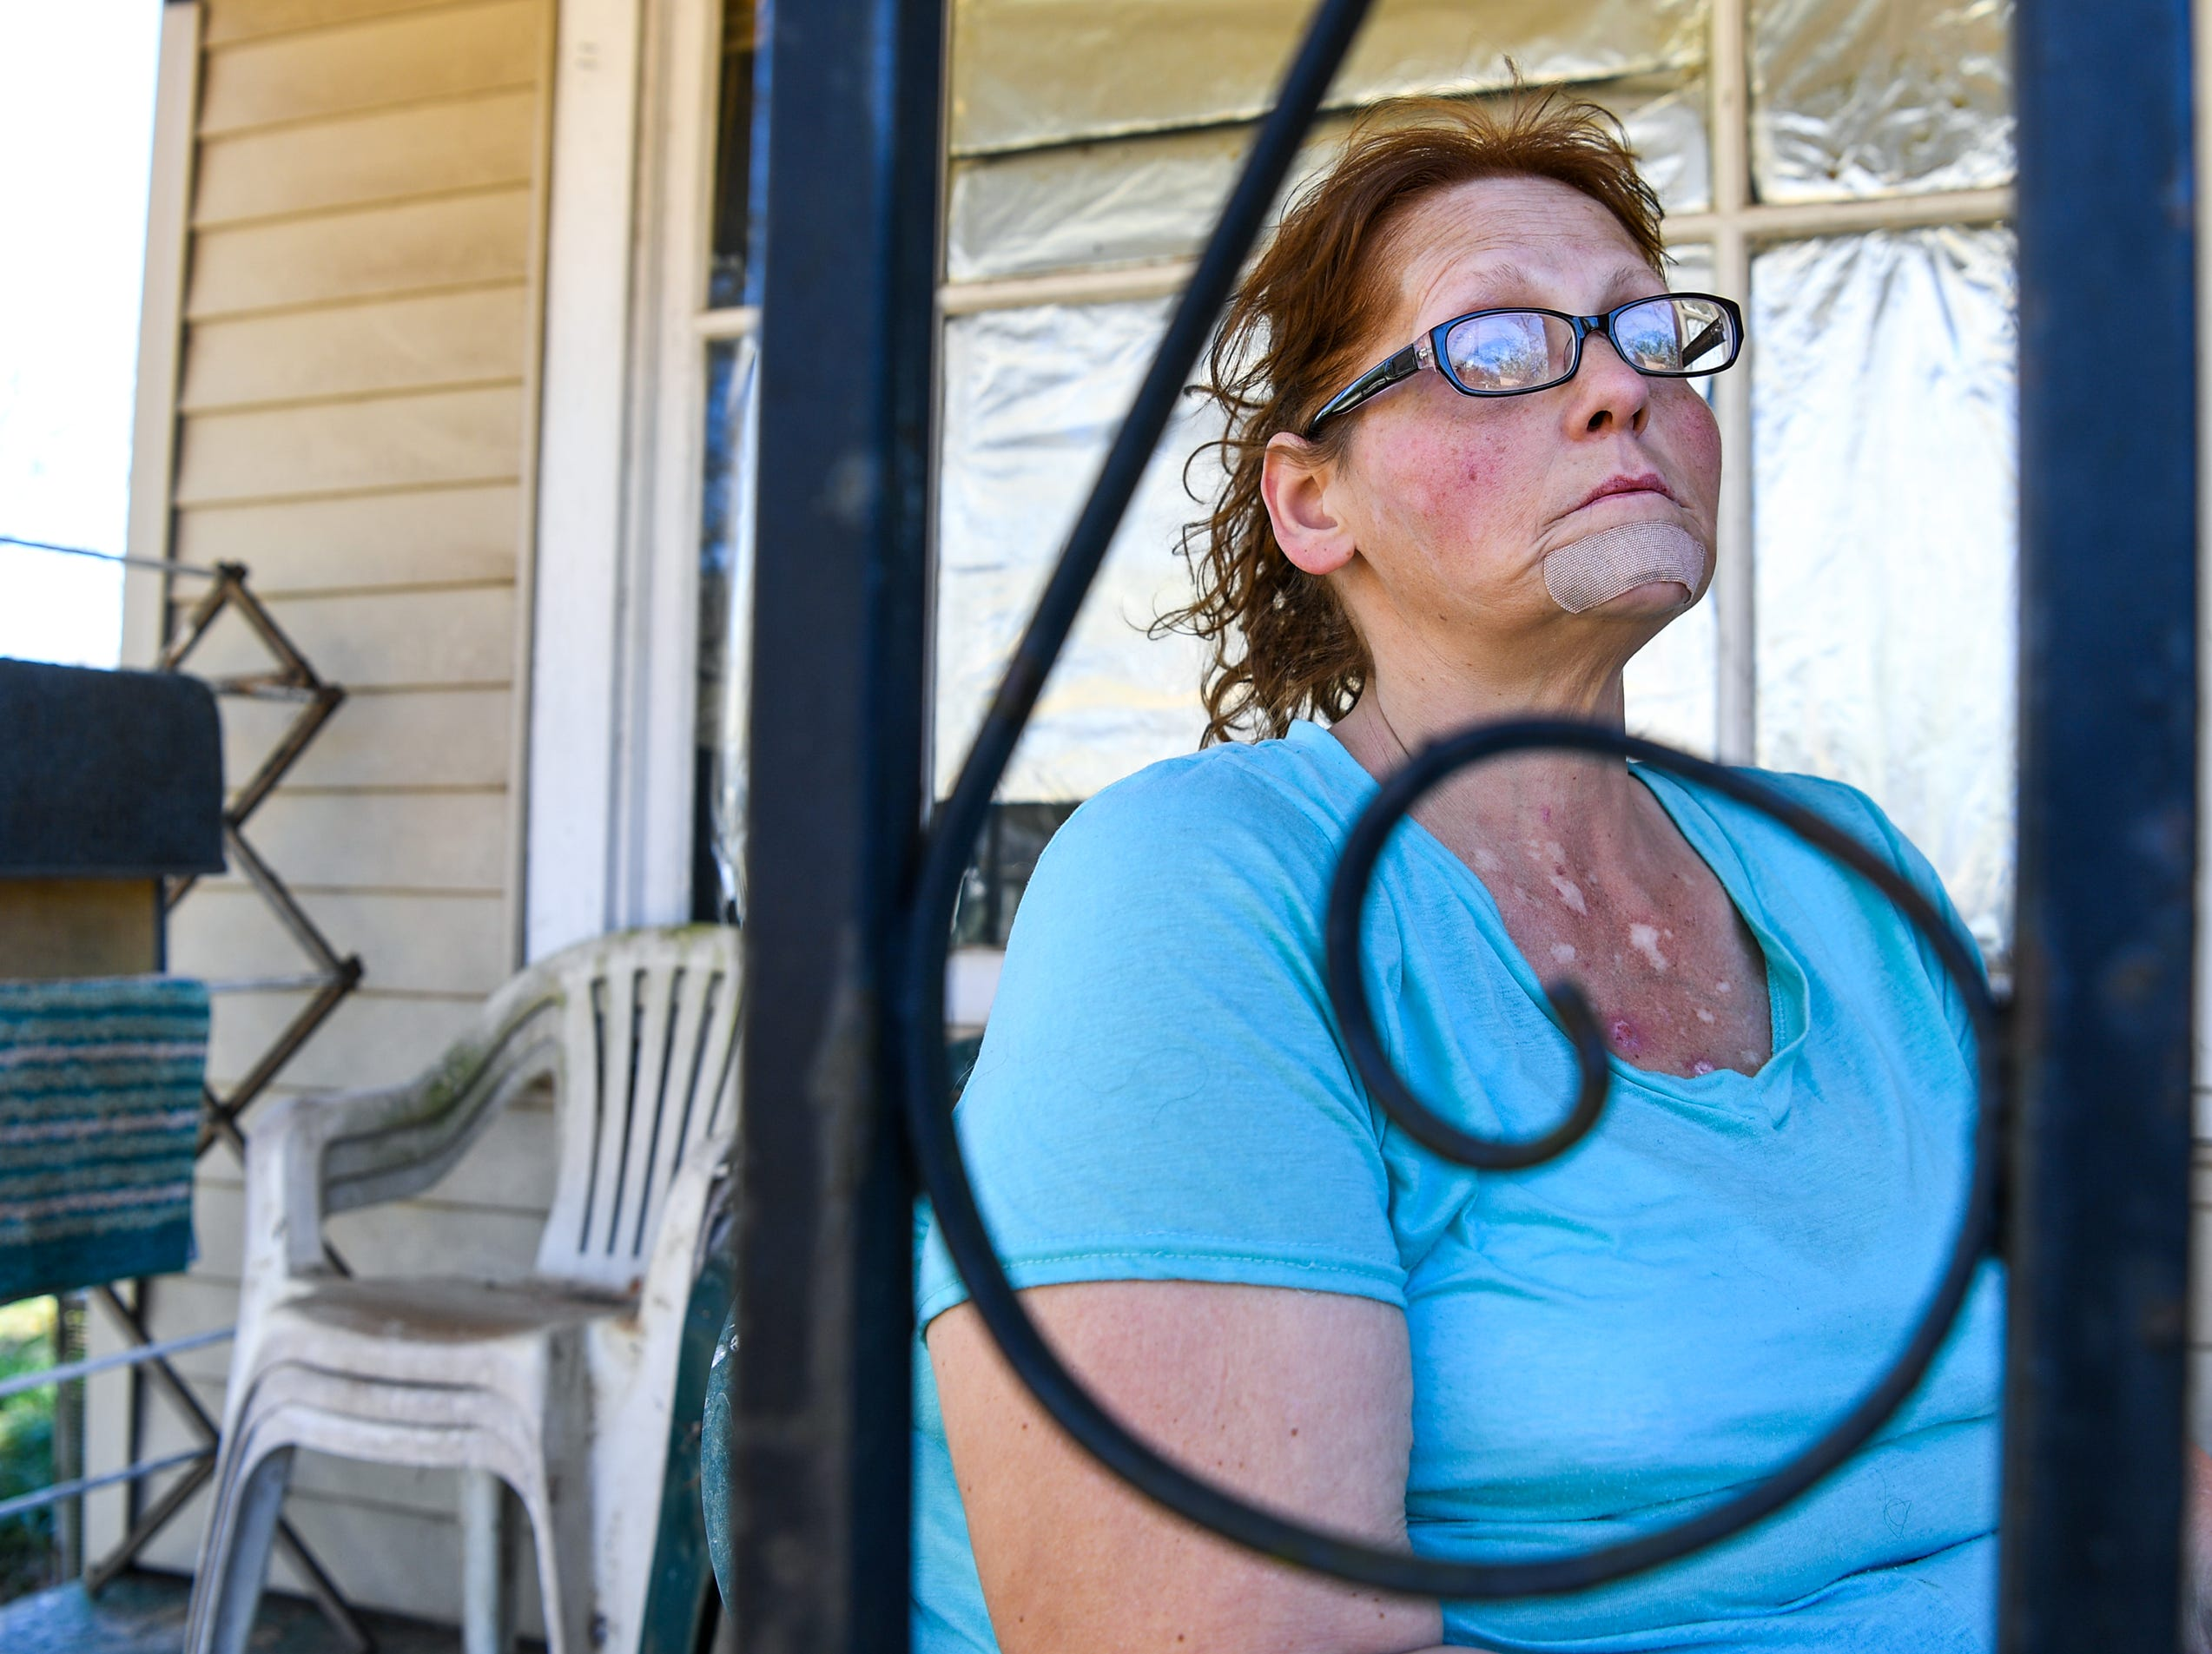 Kristy Drees of Anderson didn't expect her water bill in Homeland Park to exceed the typical monthly bill around $40 to $50. The problems with the water company and courtroom battles with her landlord while being unemployed she says is stressful.